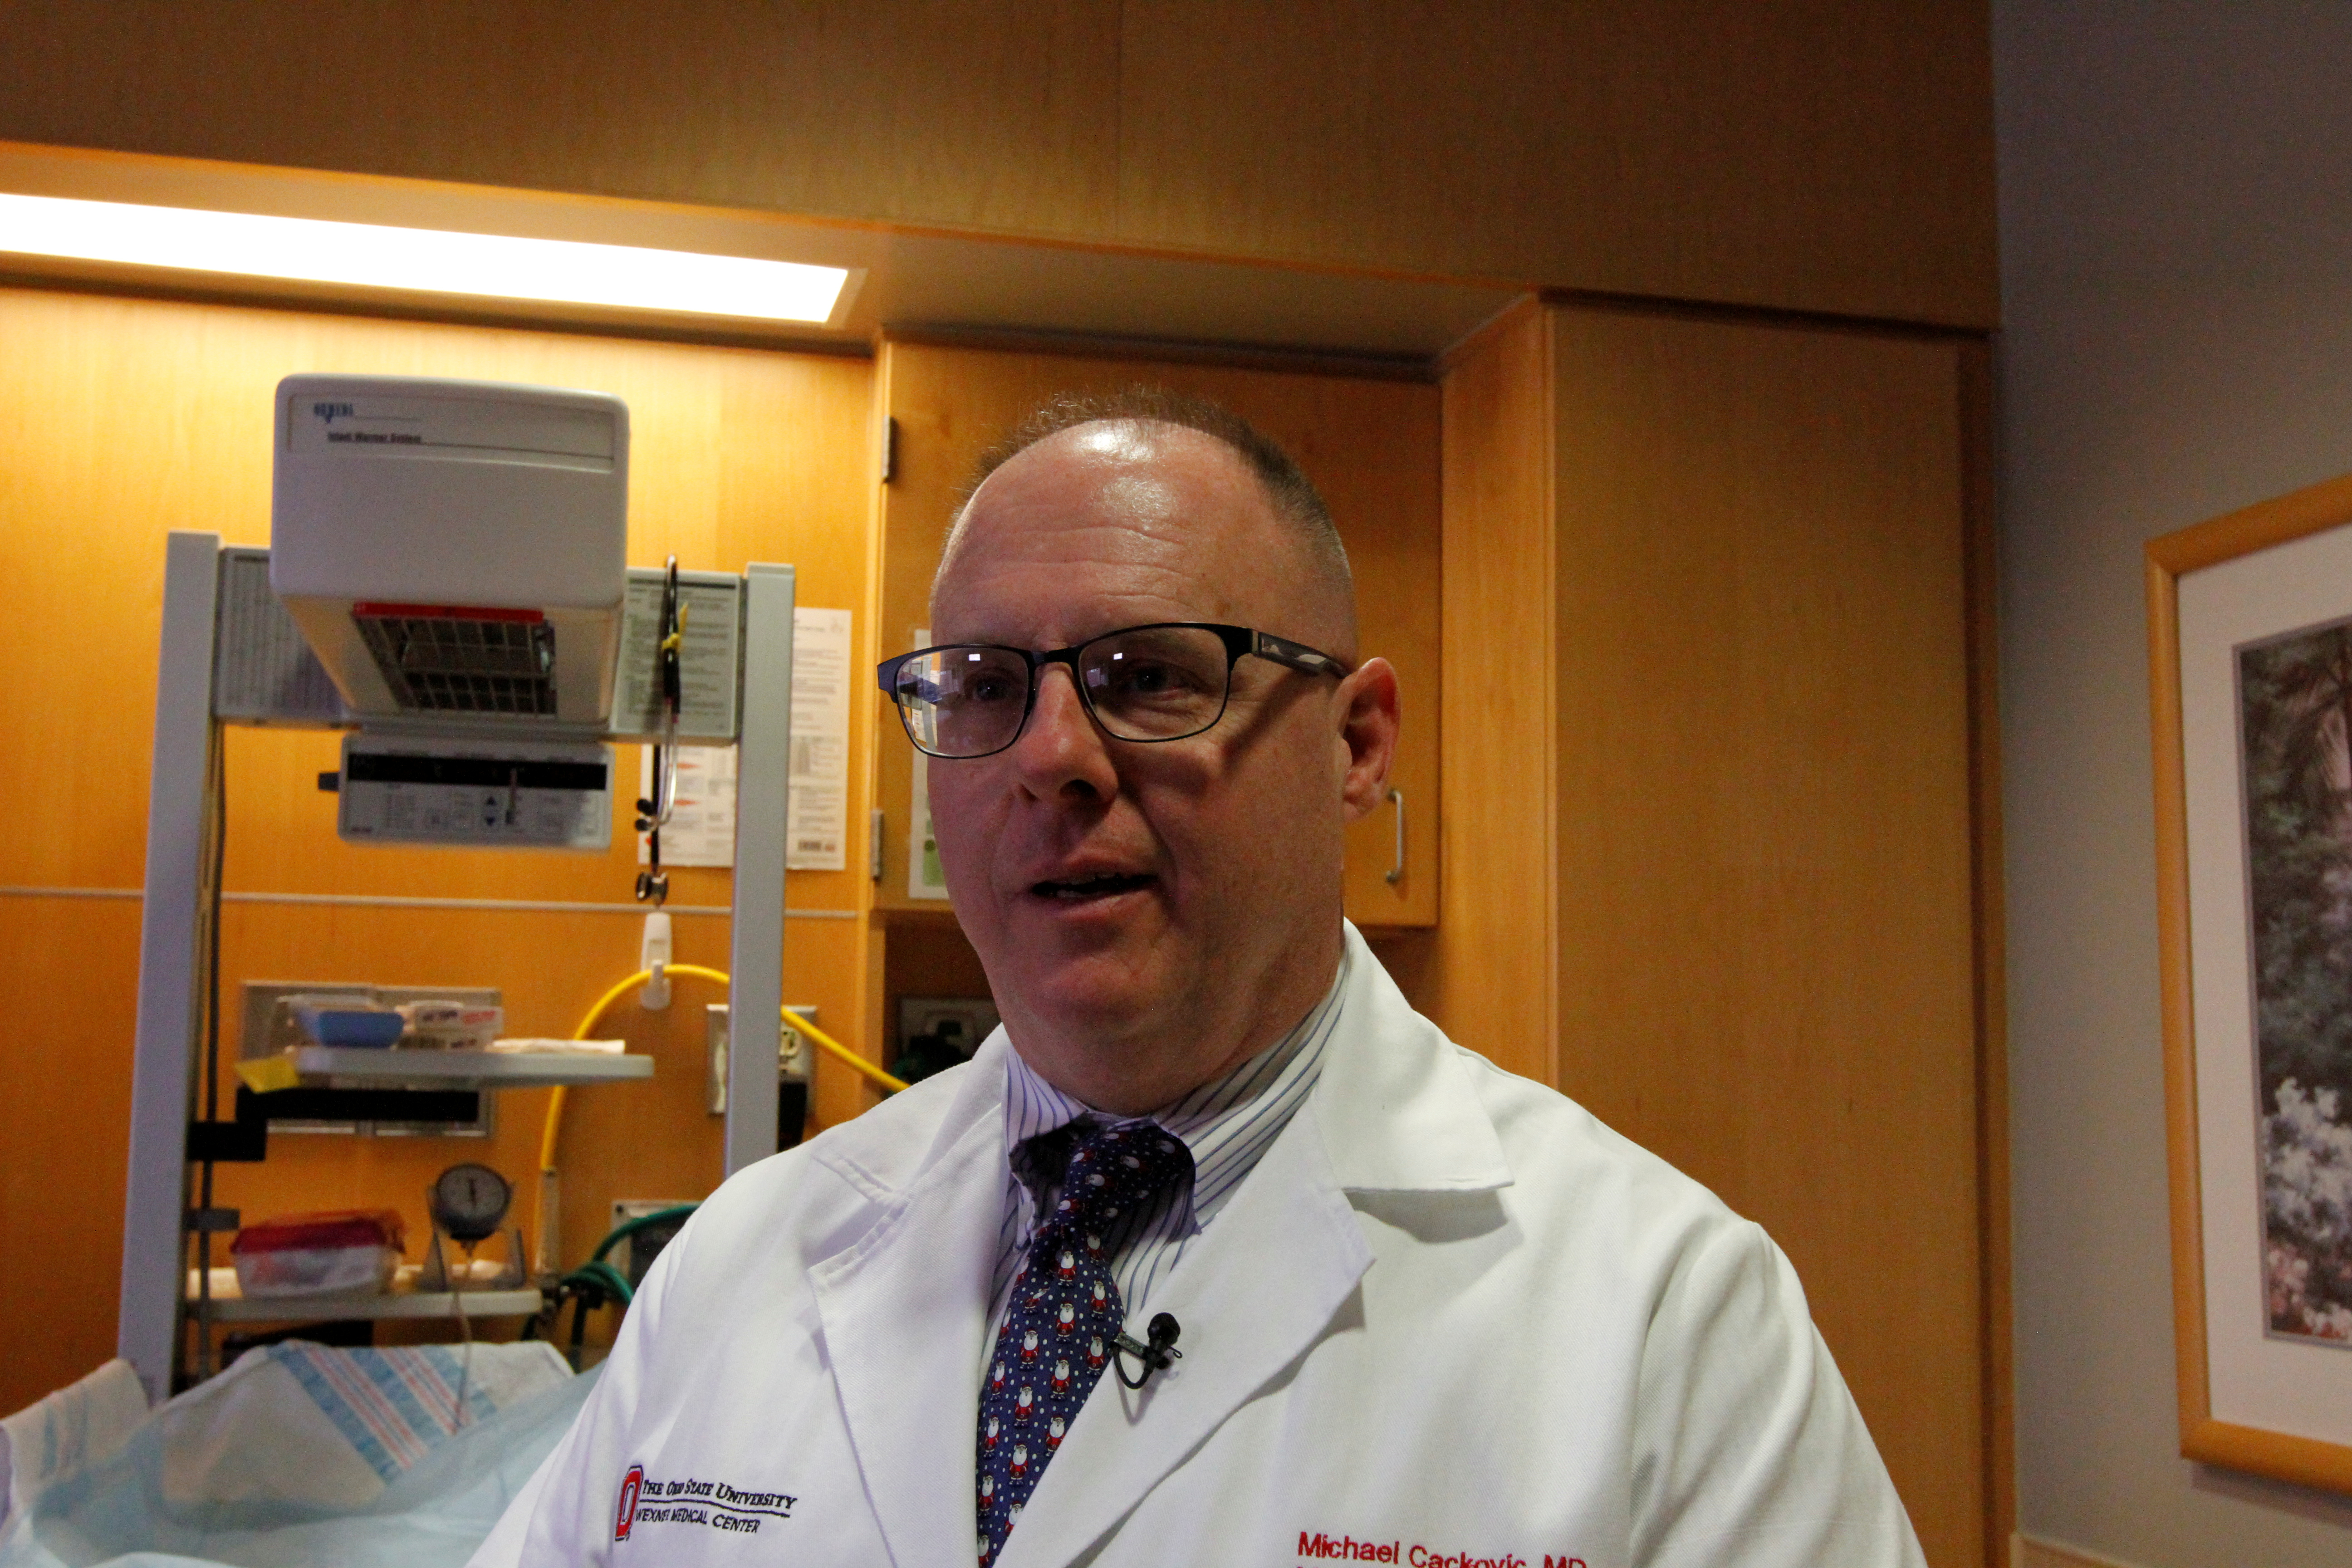 Michael Cackovic, Obstetric Director of the maternal cardiac disease in pregnancy program at the Ohio State University Wexner Medical Center, speaks to Reuters in Columbus, Ohio, December 12, 2017. Picture taken December 12, 2017.